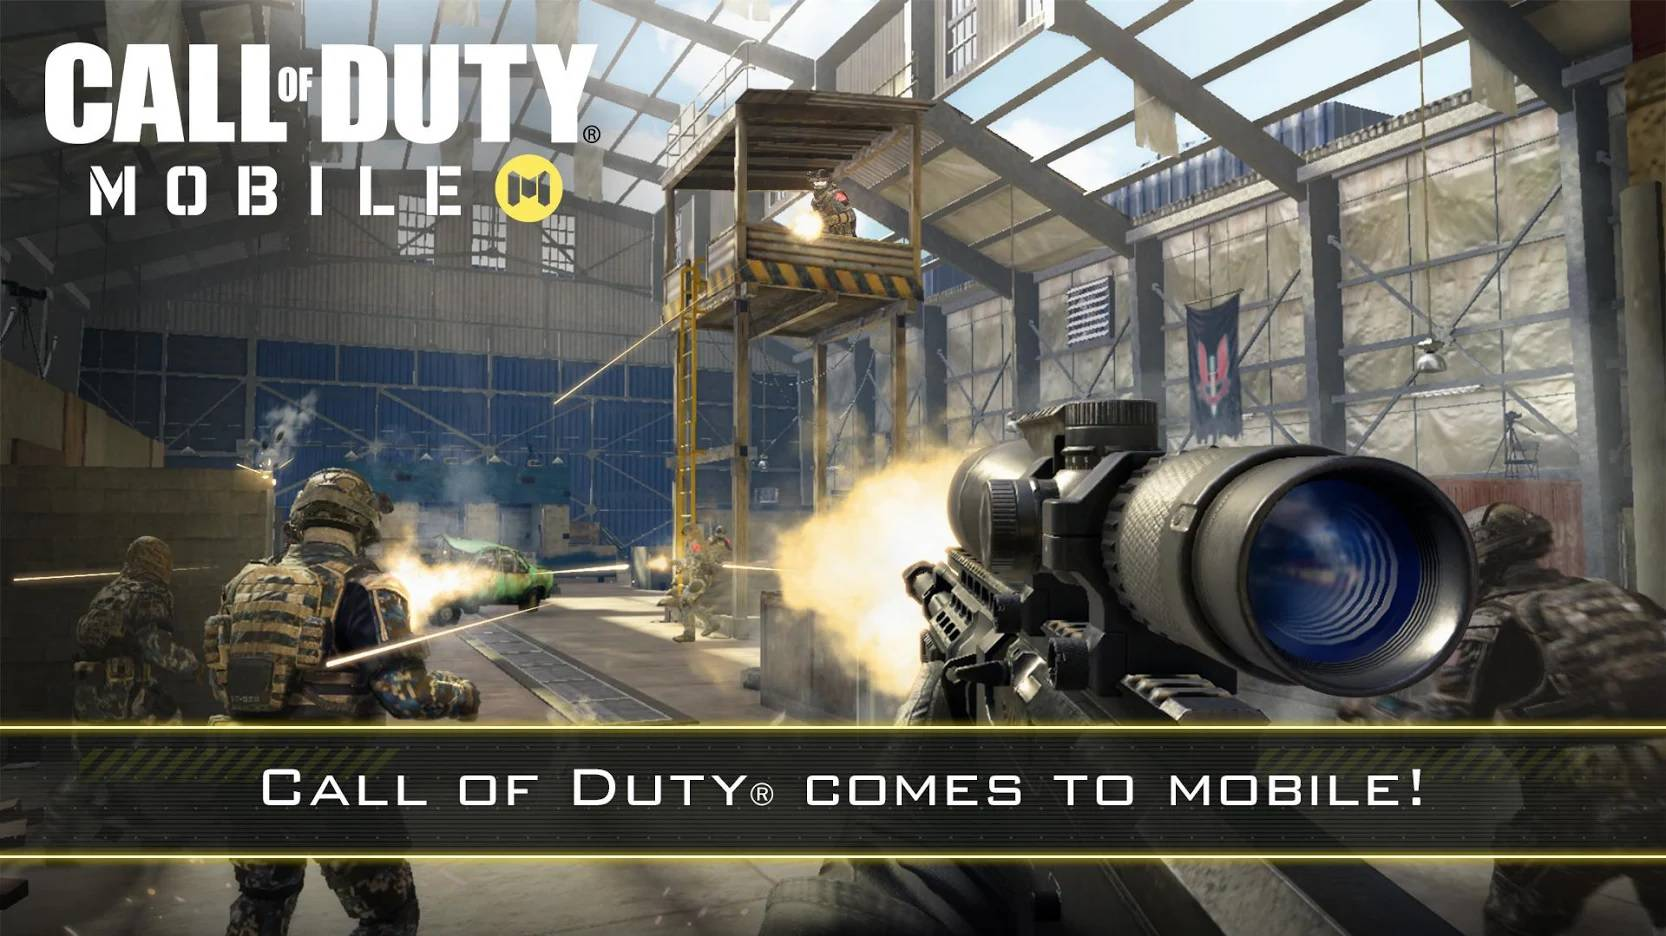 Call of Duty stiže na mobitele: Pogledajte prvu video najavu